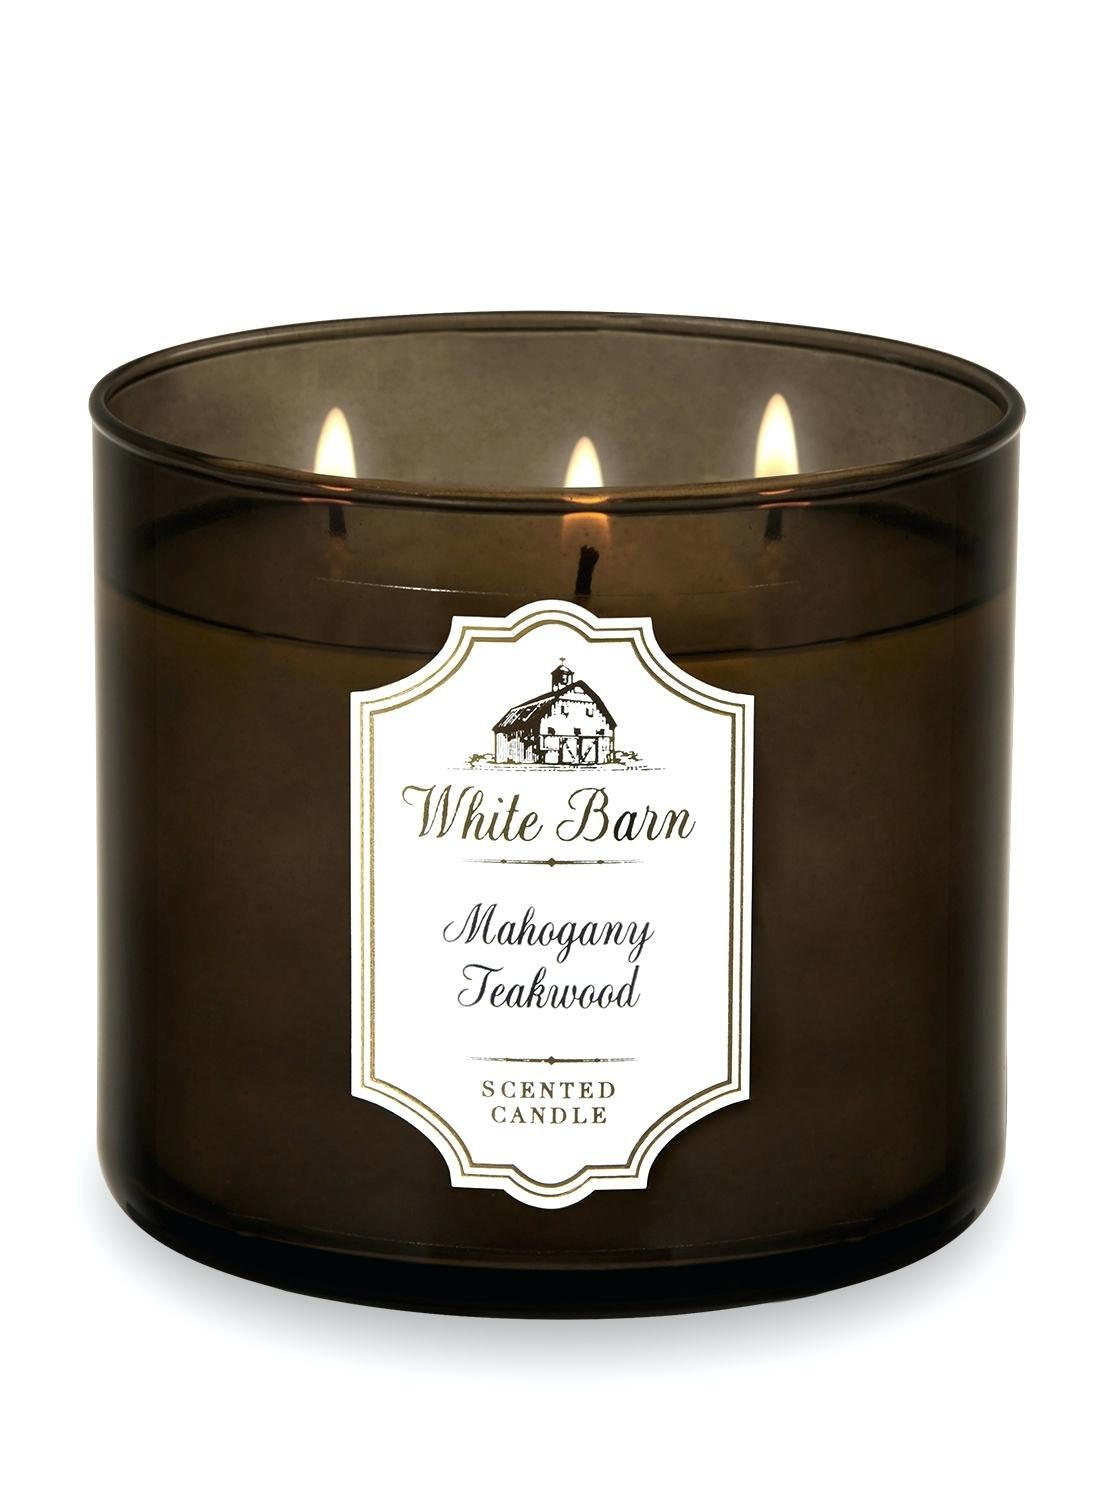 What Brand Of Candles Are The Most Fragrant When Burned